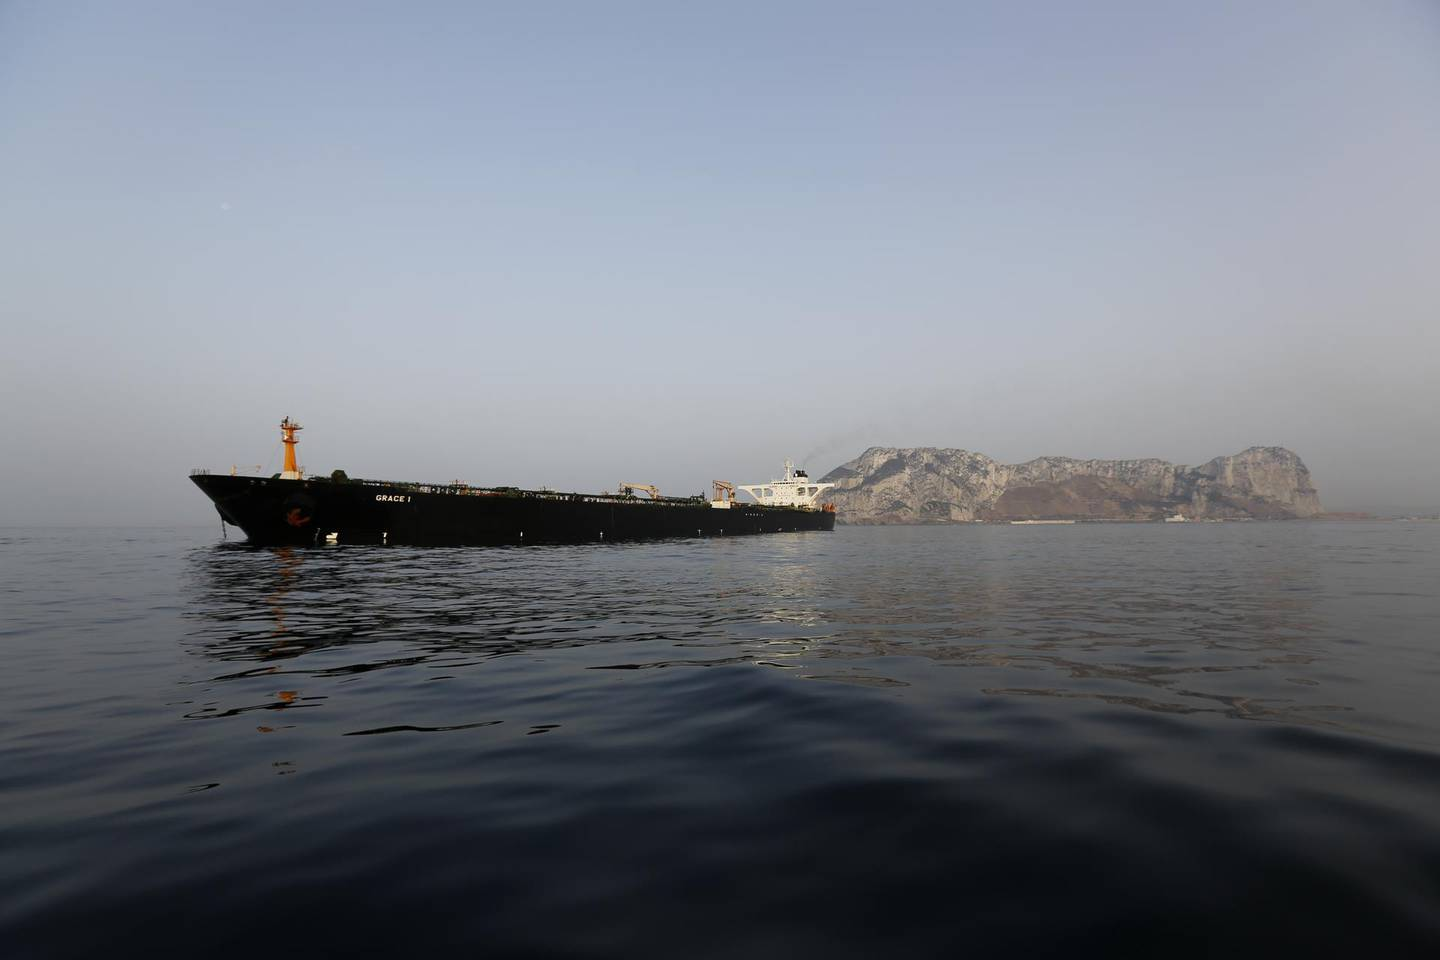 The impounded Iranian crude oil tanker, Grace 1, sits anchored off the coast of Gibraltar, on Saturday, July 20, 2019. Tensions have flared in the Strait of Hormuz in recent weeks as Iran resists U.S. sanctions that are crippling its oil exports and lashes out after the seizure on July 4 of one of its ships near Gibraltar. Photographer: Marcelo del Pozo/Bloomberg